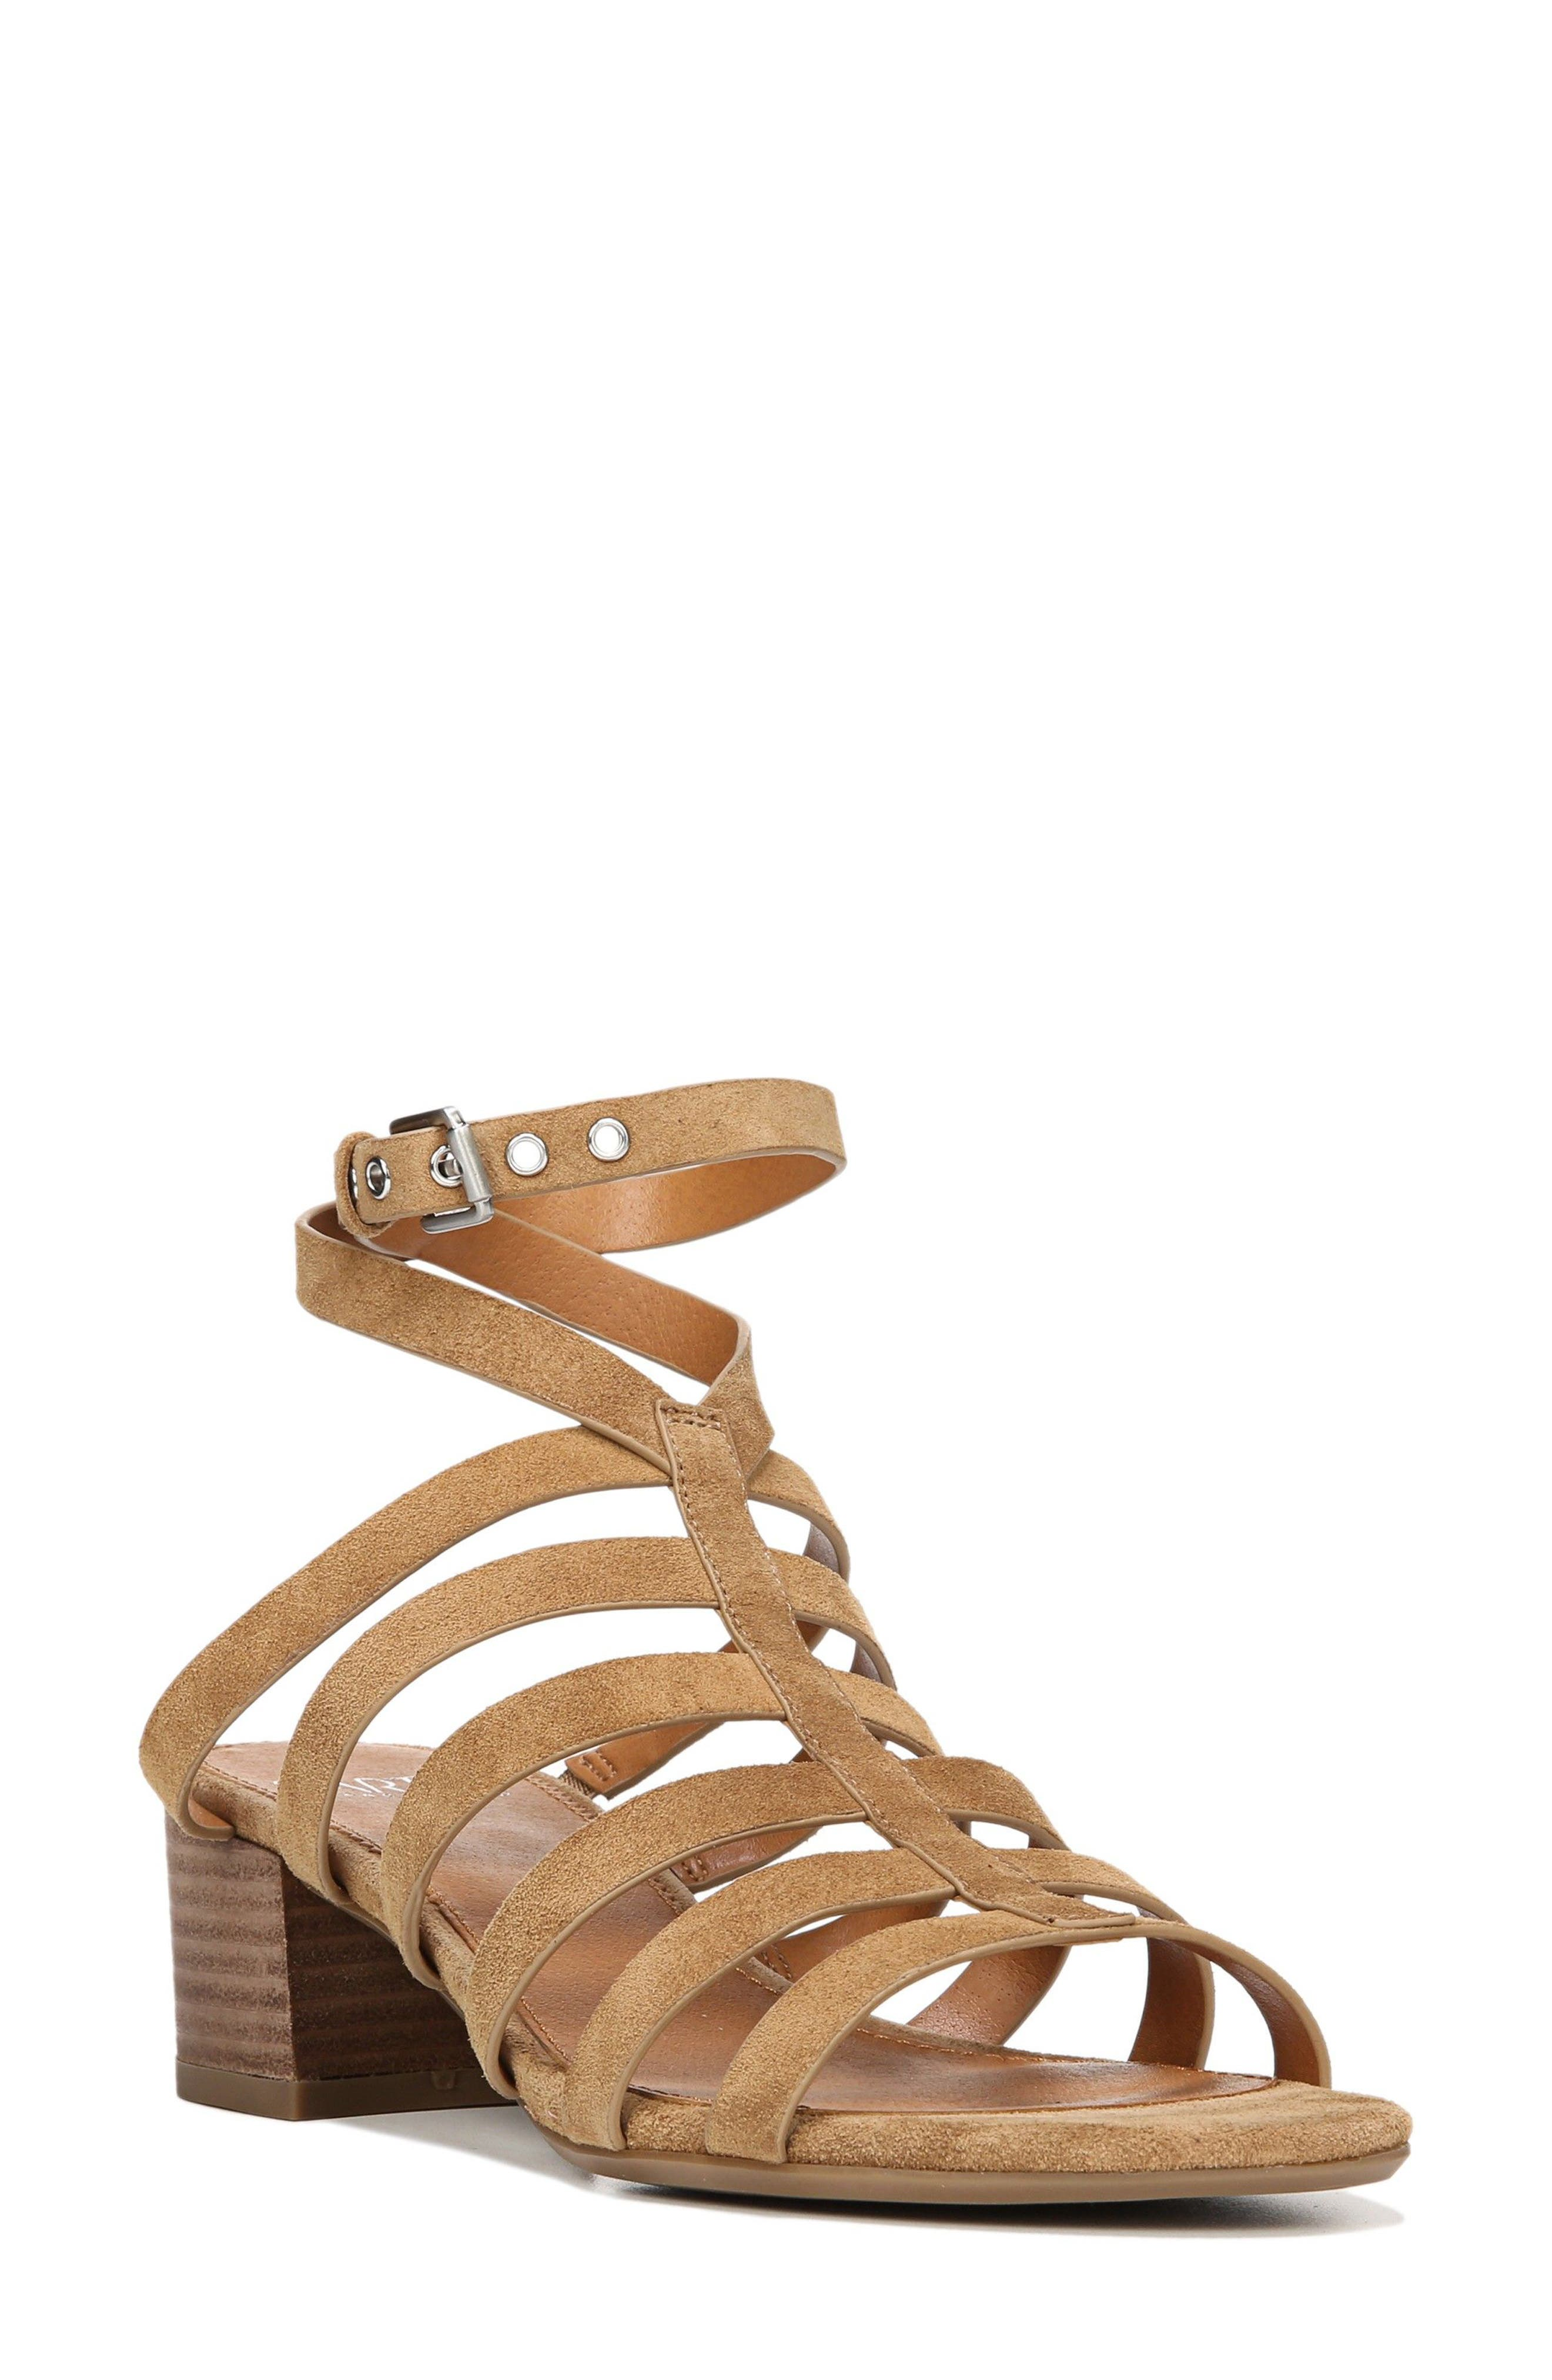 Main Image - SARTO by Franco Sarto Finesse Cage Sandal (Women)